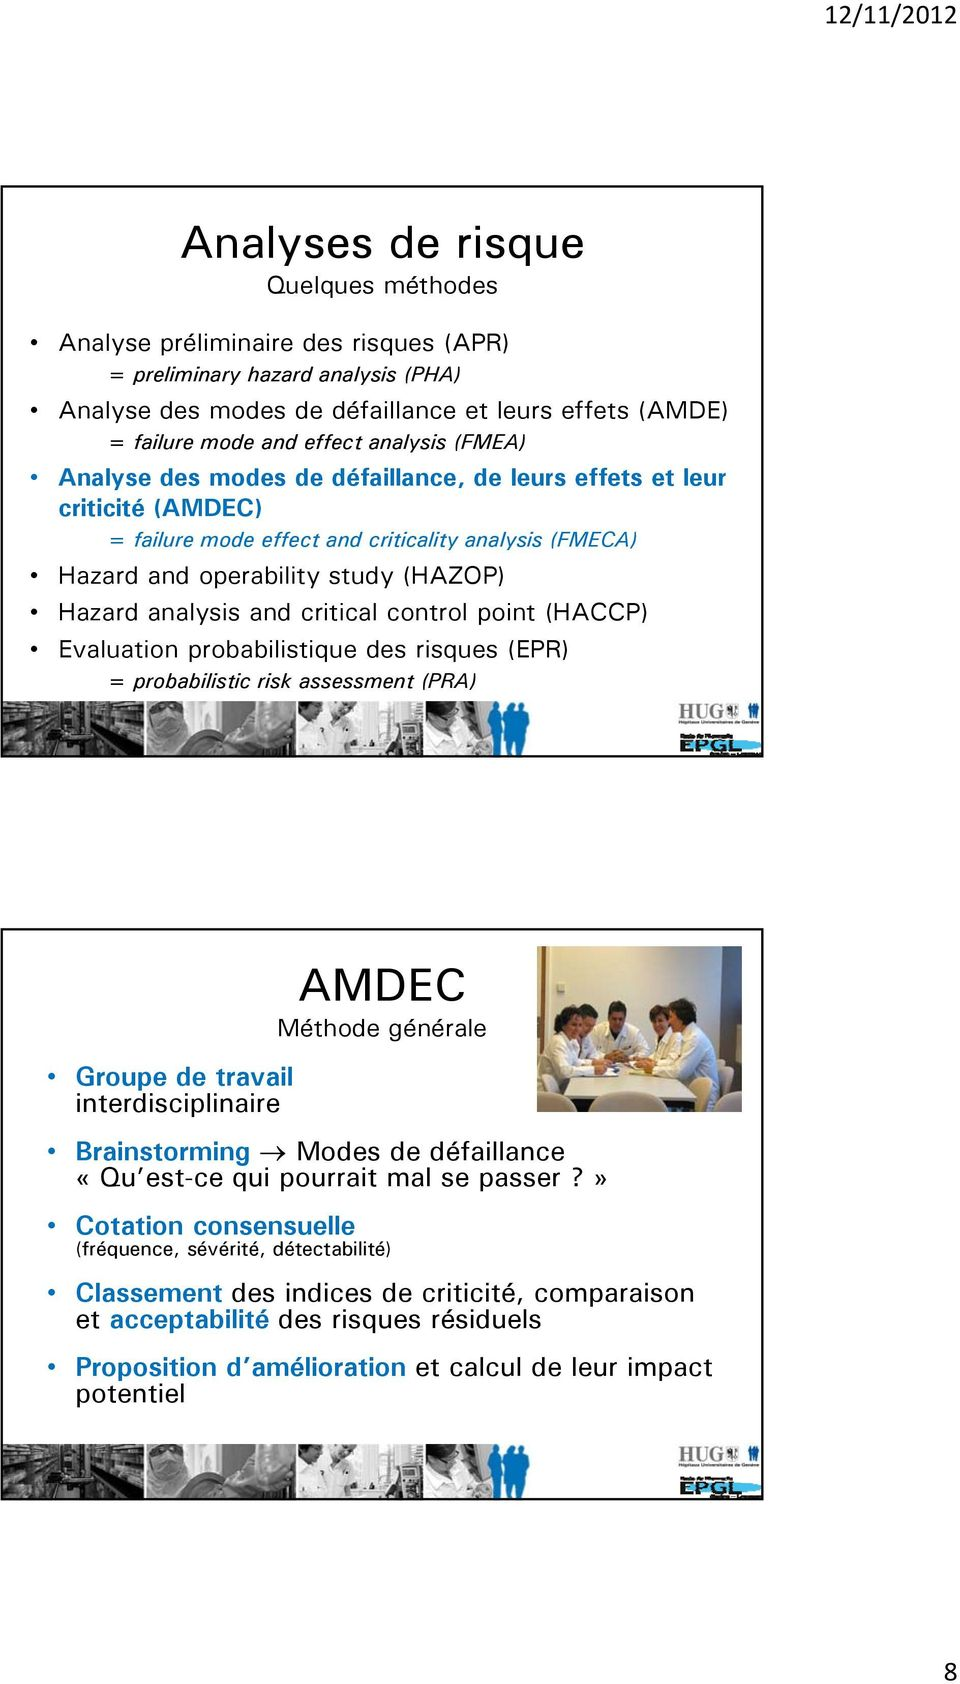 and critical control point (HACCP) Evaluation probabilistique des risques (EPR) = probabilistic risk assessment (PRA) Groupe de travail interdisciplinaire AMDEC Méthode générale Brainstorming Modes